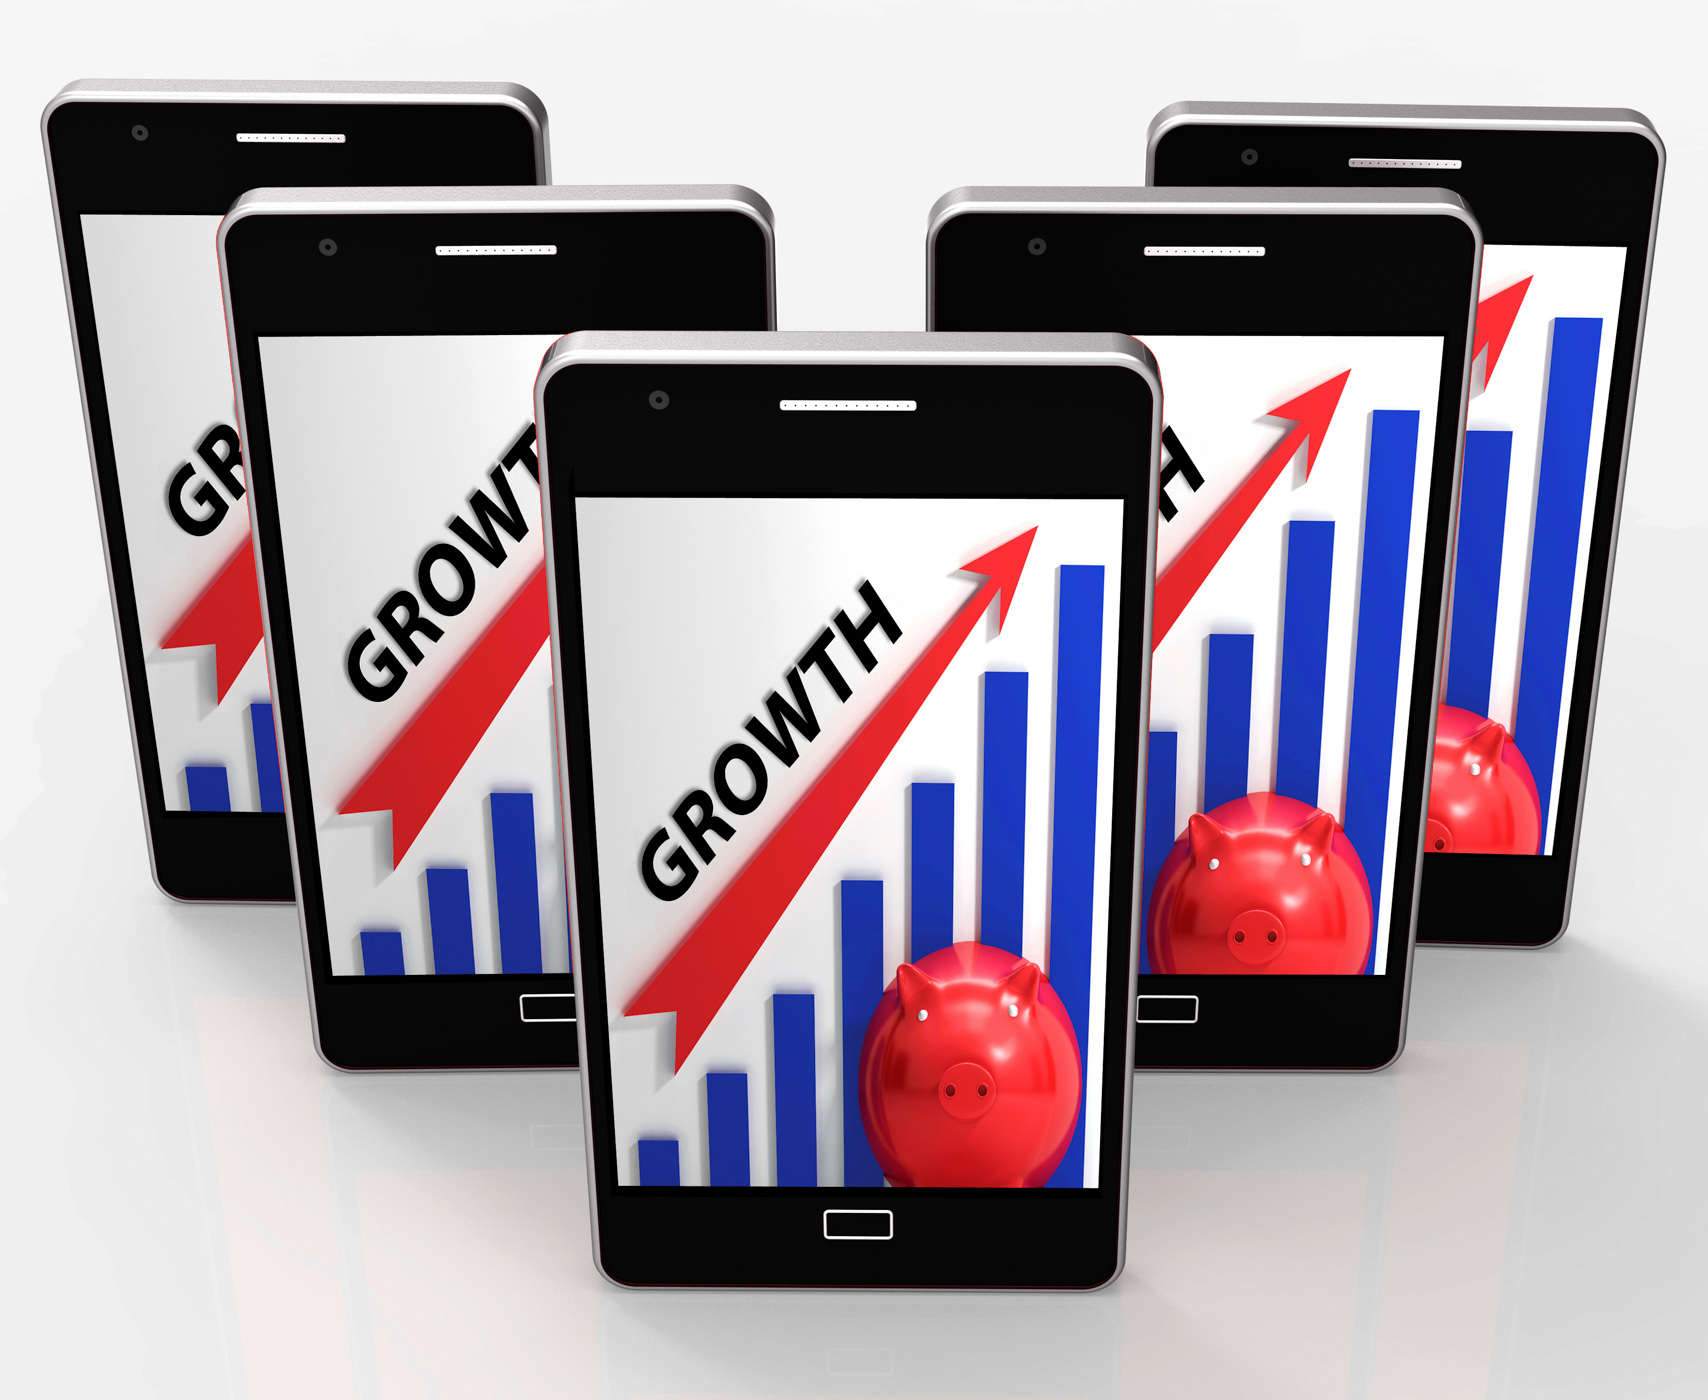 Growth Graph Means Financial Increase Or Gain, Income, Web, Smartphone, Sales, HQ Photo